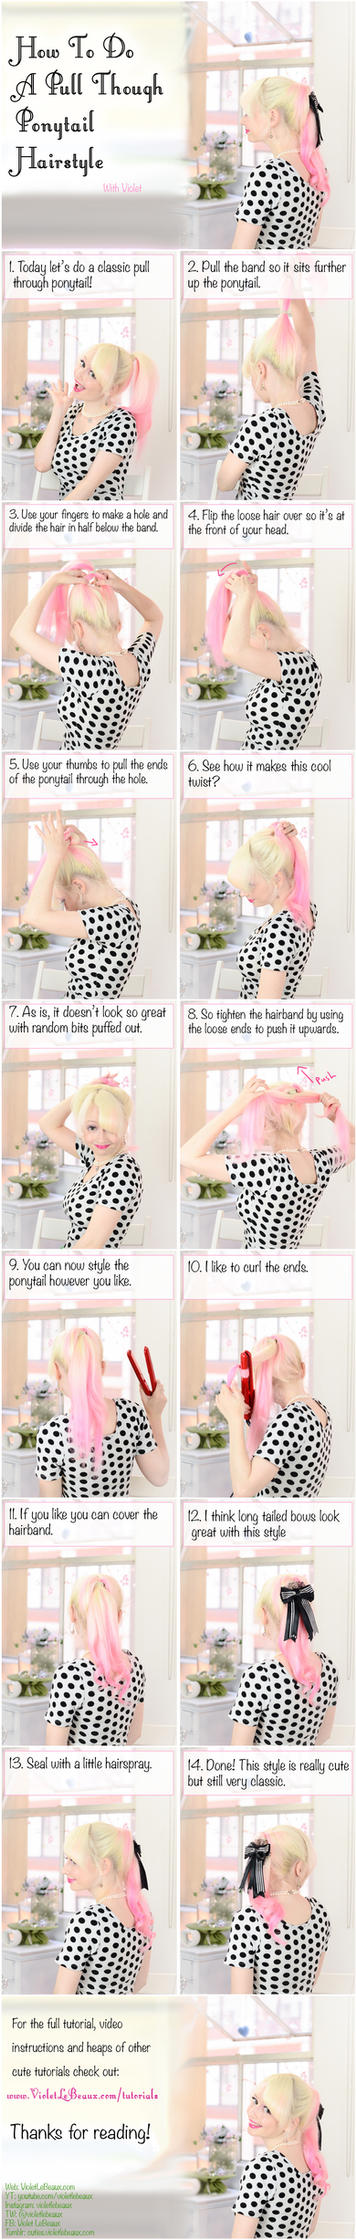 Pull Through Ponytail Hairstyle Tutorial by VioletLeBeaux